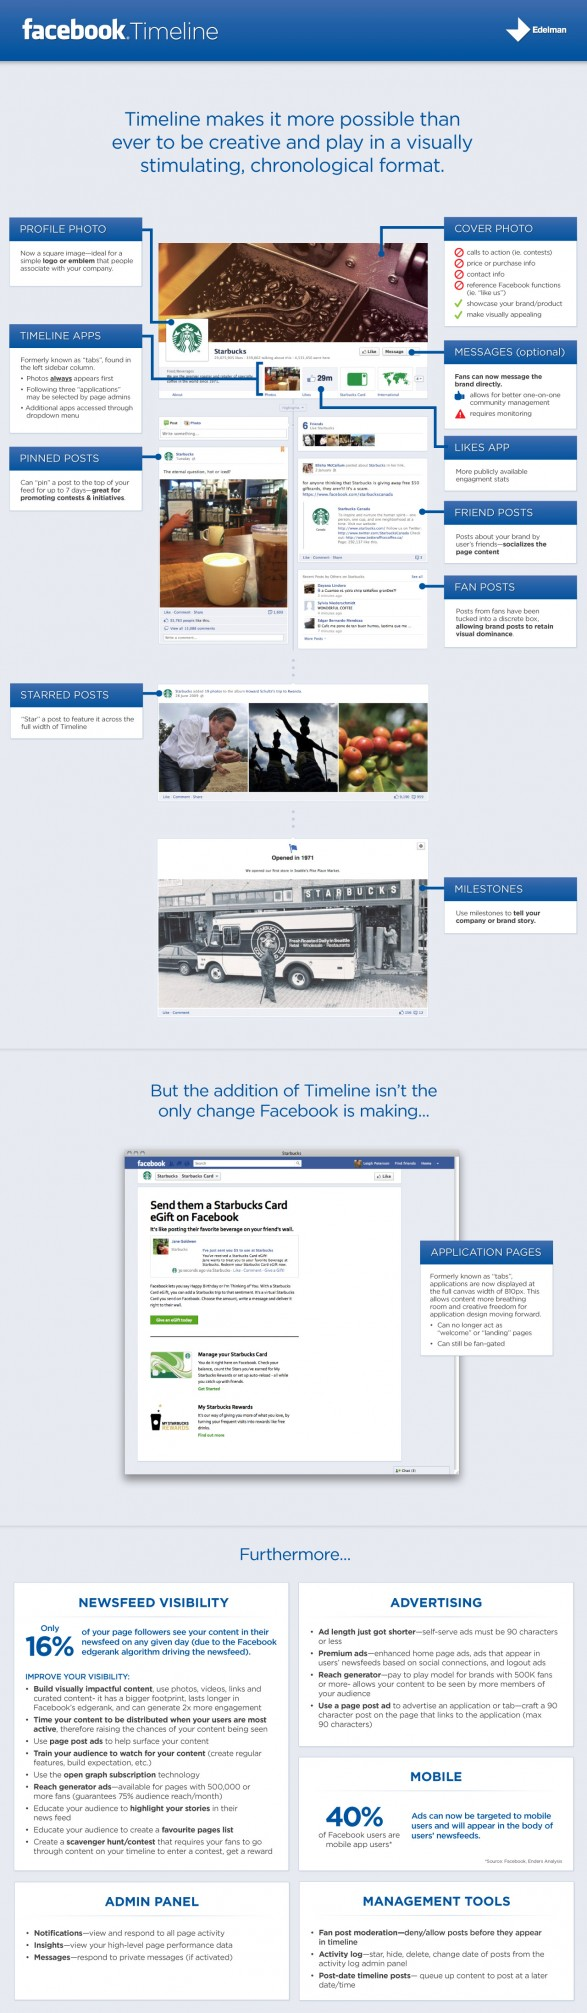 Facebook Timeline for Business - more info you need!